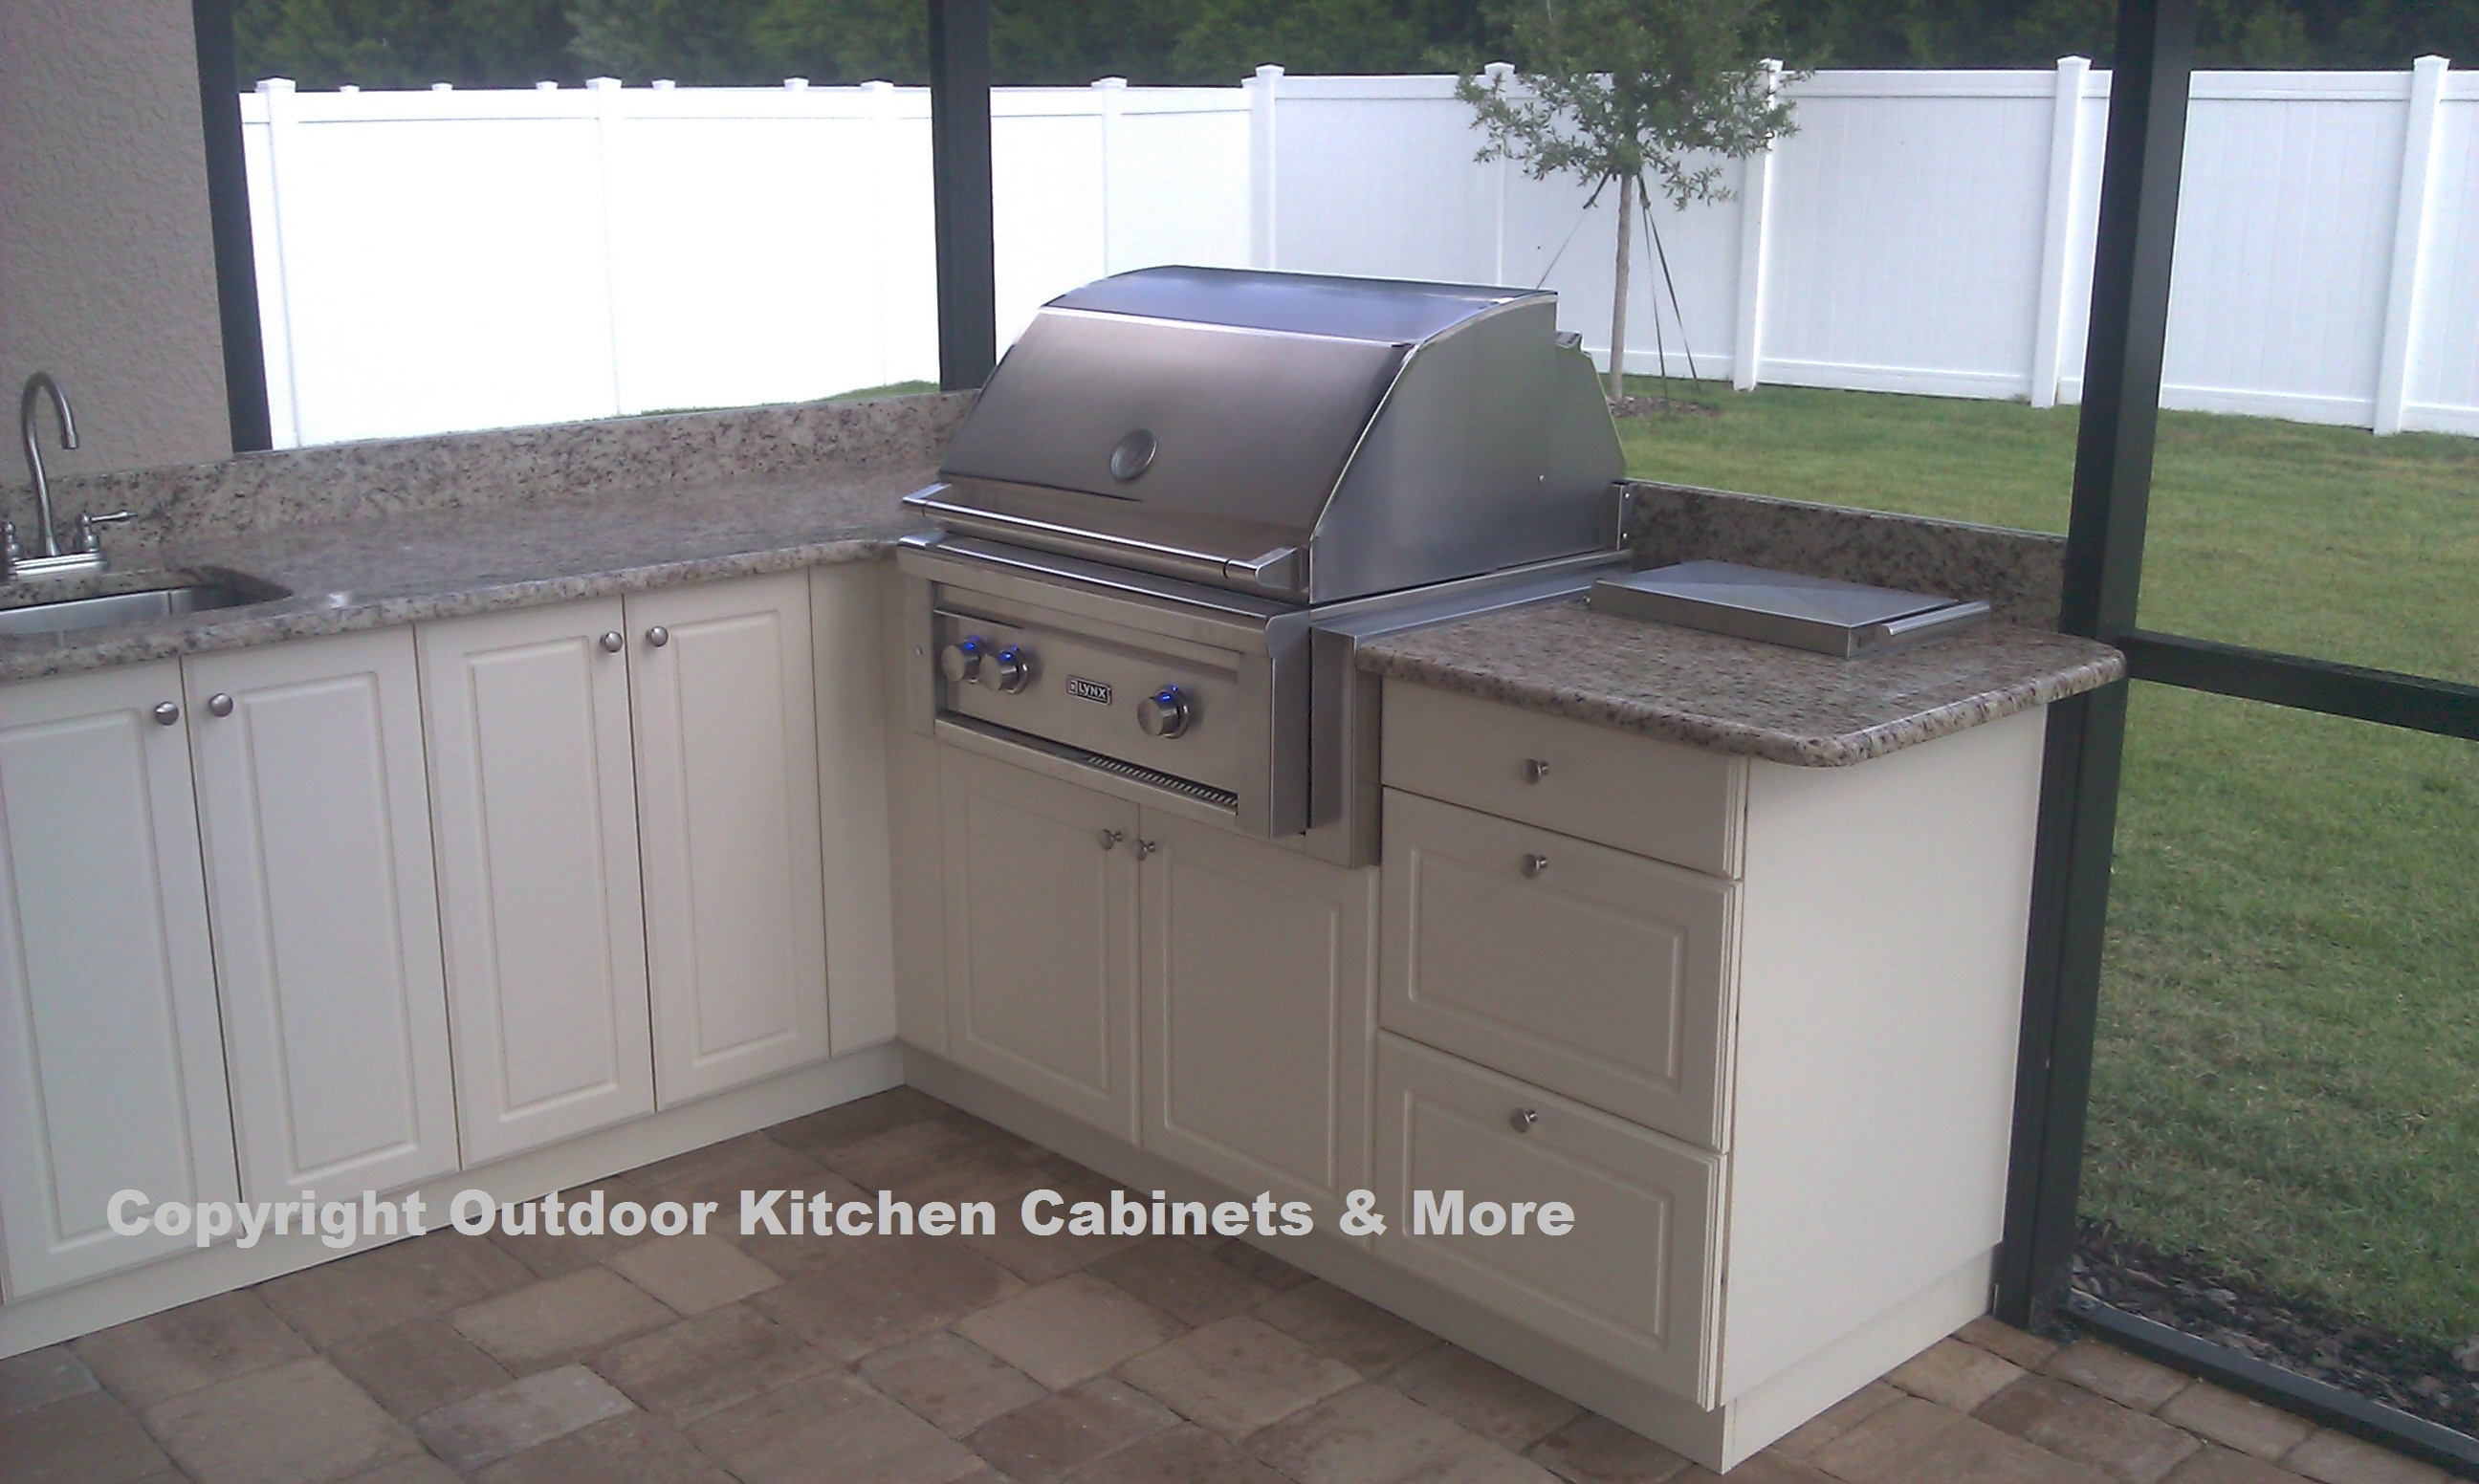 outdoor kitchen cabinets and more outdoor kitchen cabinets amp more quality outdoor kitchen 24147